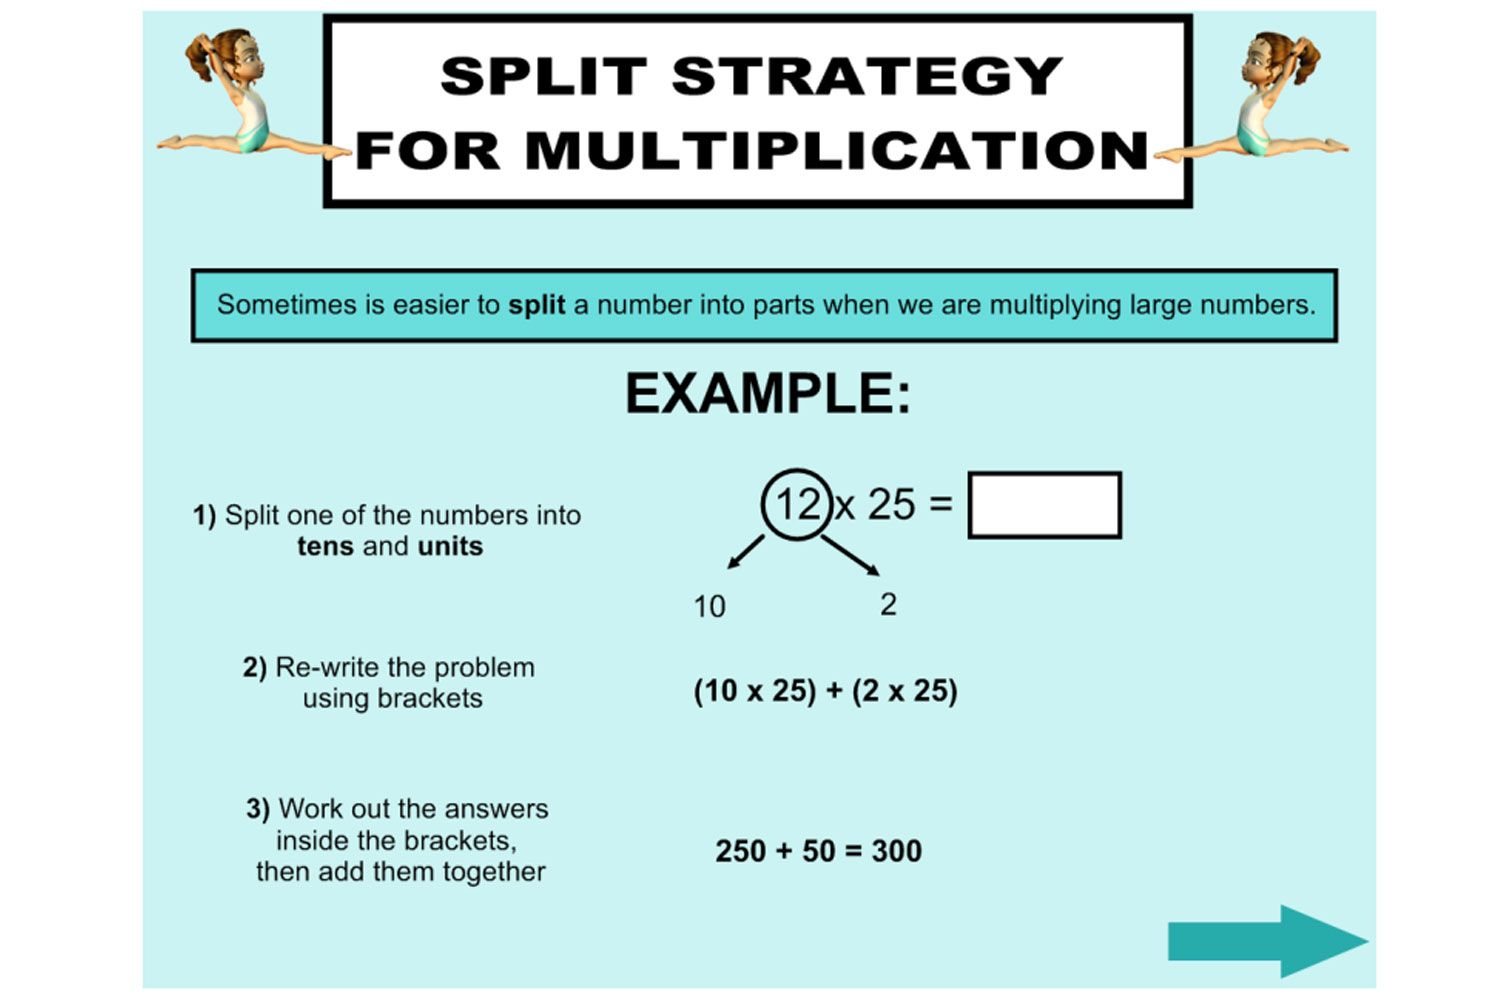 Teach your students how to use the Split Strategy for multiplication ...